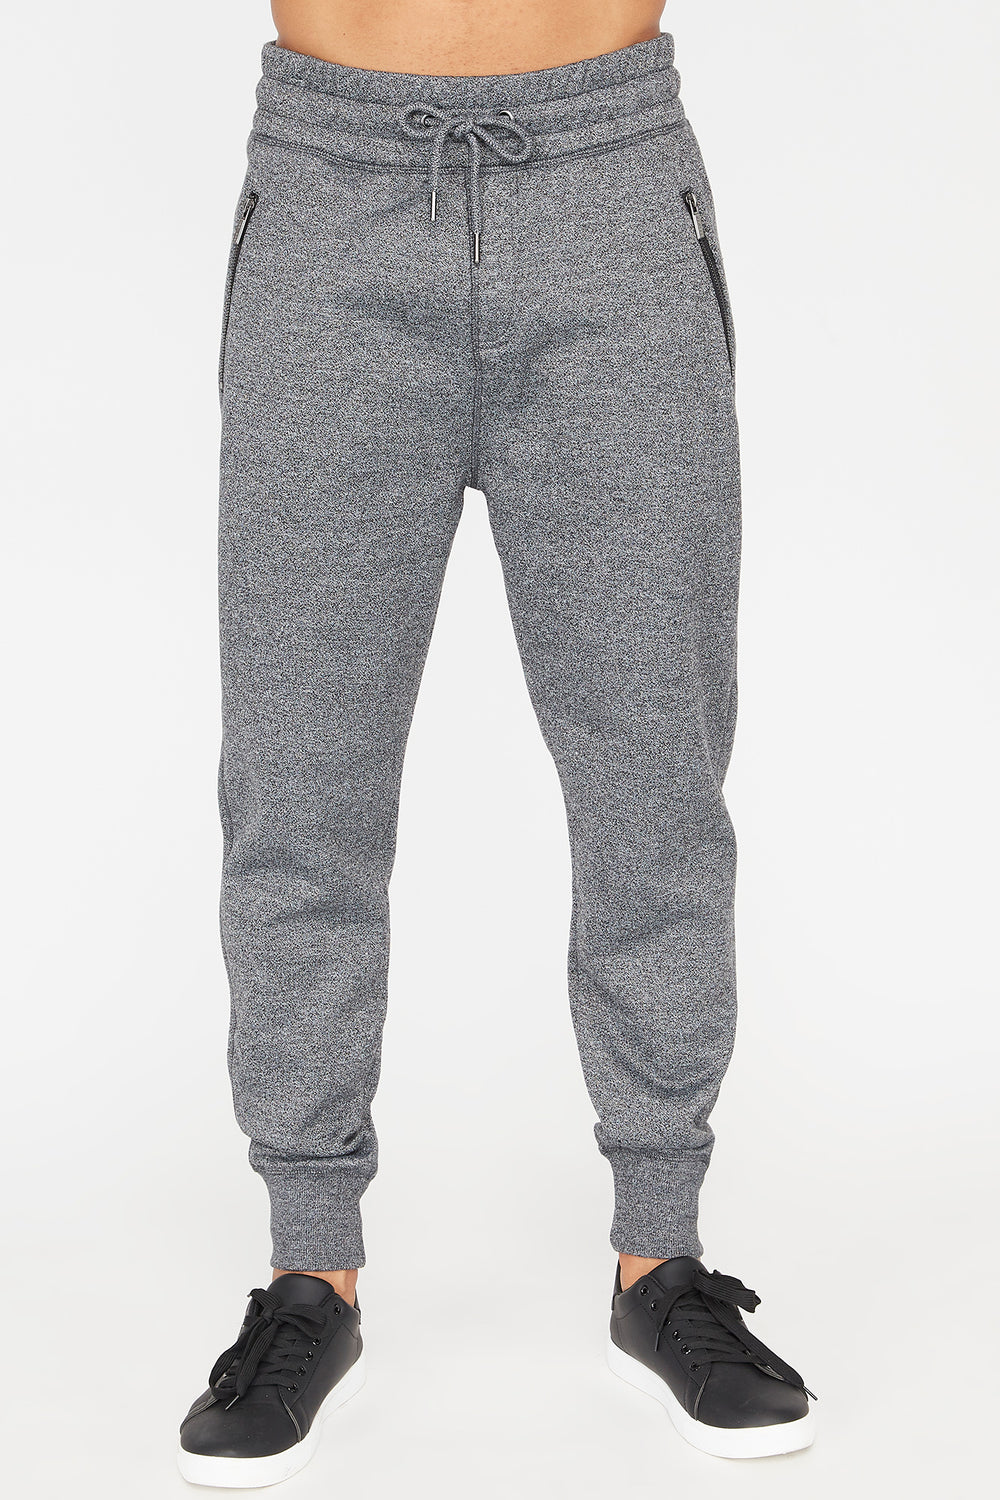 Zoo York Mens Solid Zip Jogger Black with White